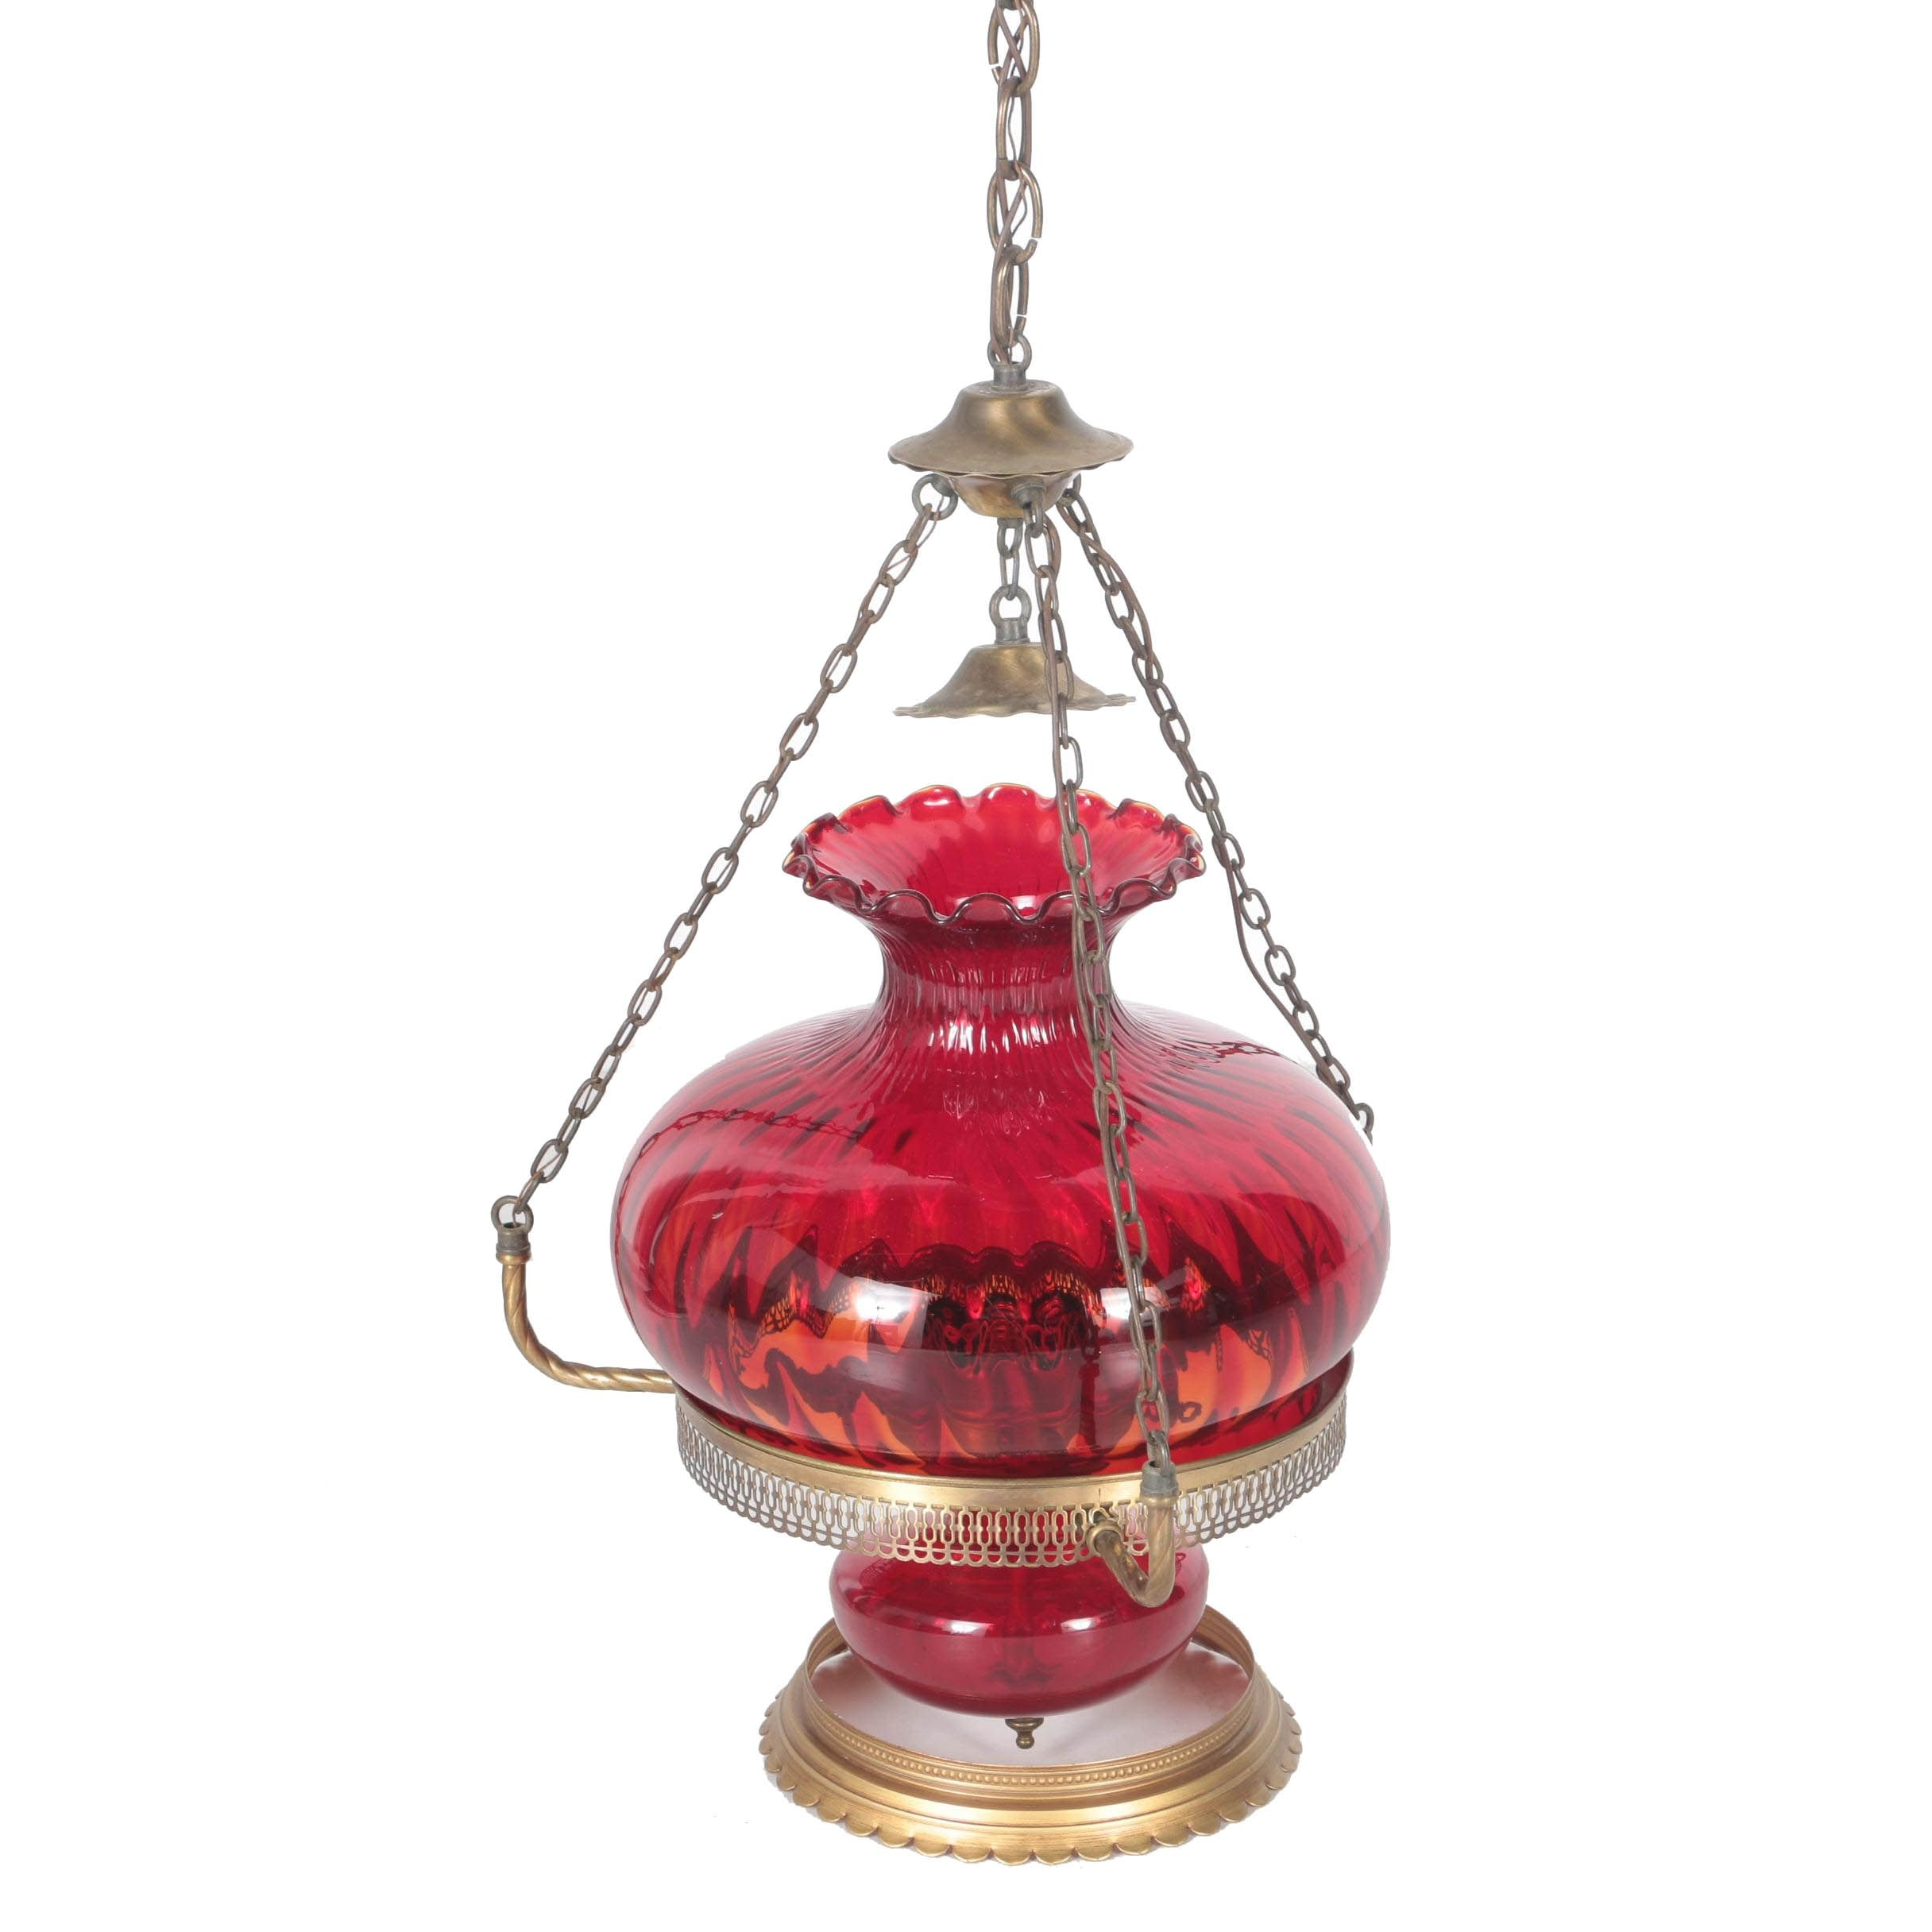 Vintage Oil Lamp Style Pendant Light with Ruby Glass Shade